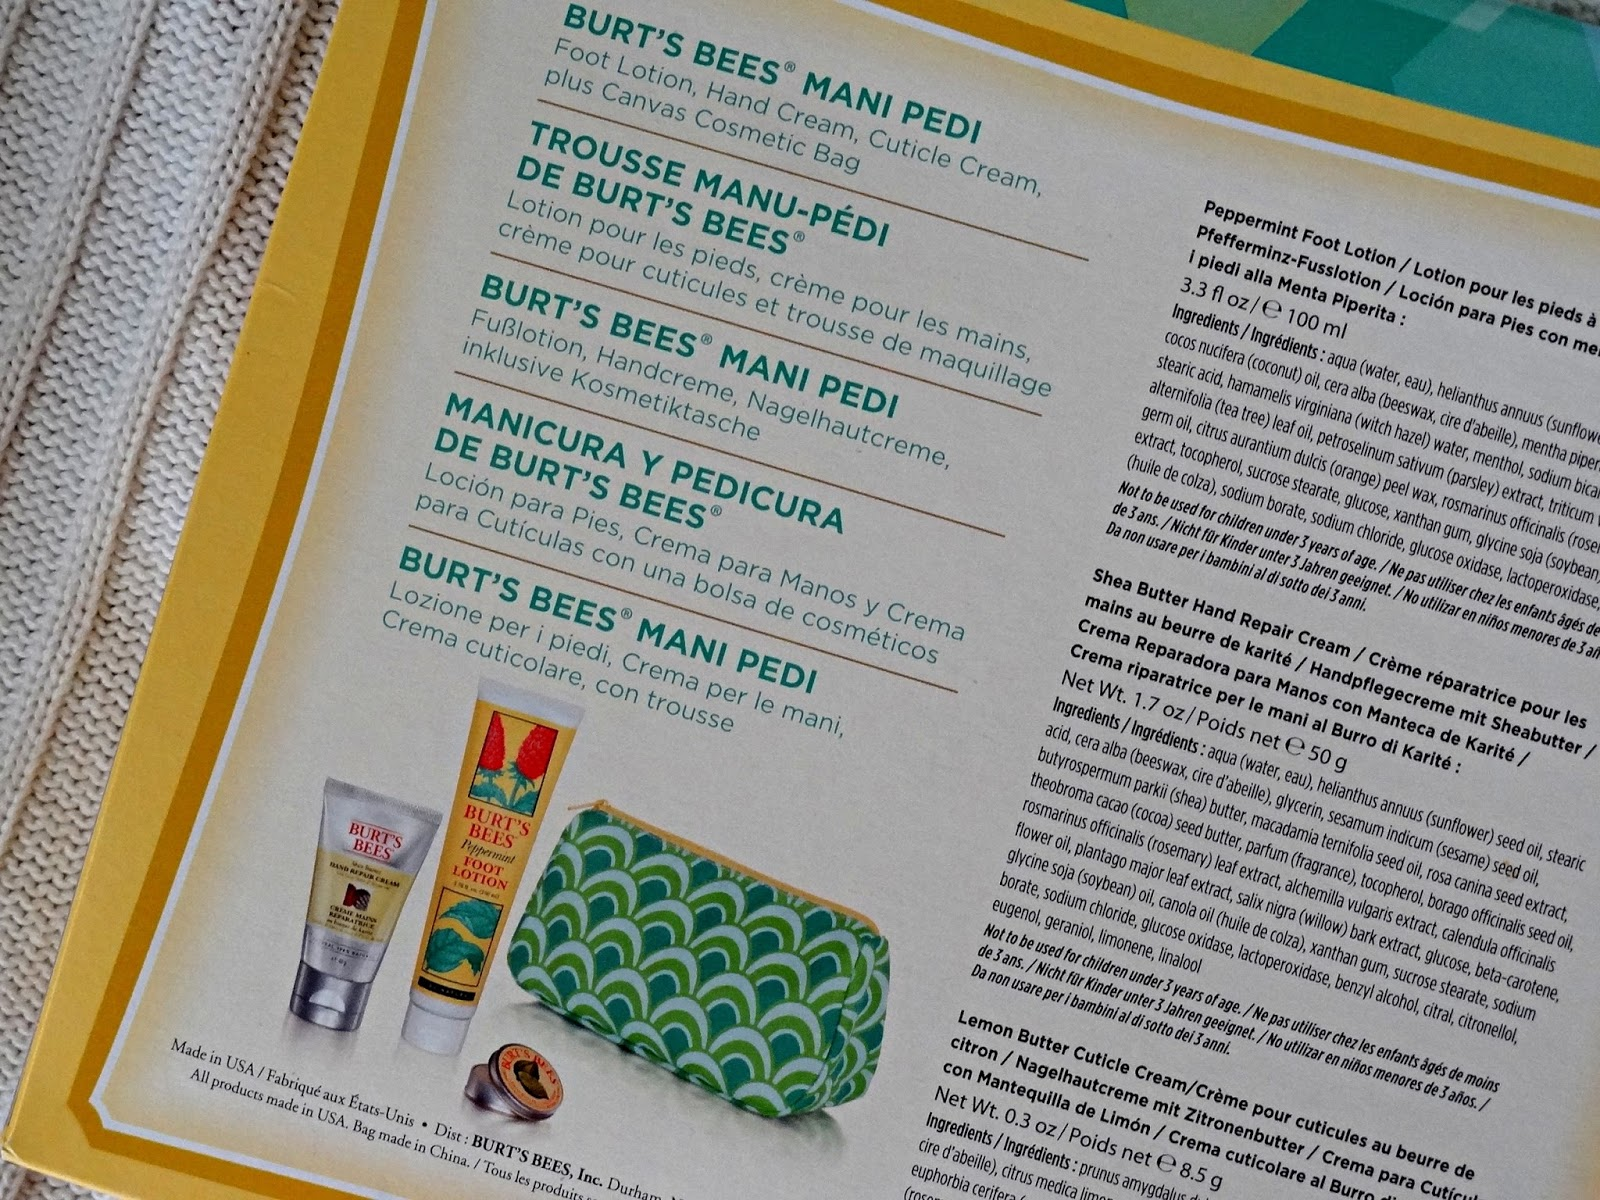 burt's bees mani pedi kit ingredients